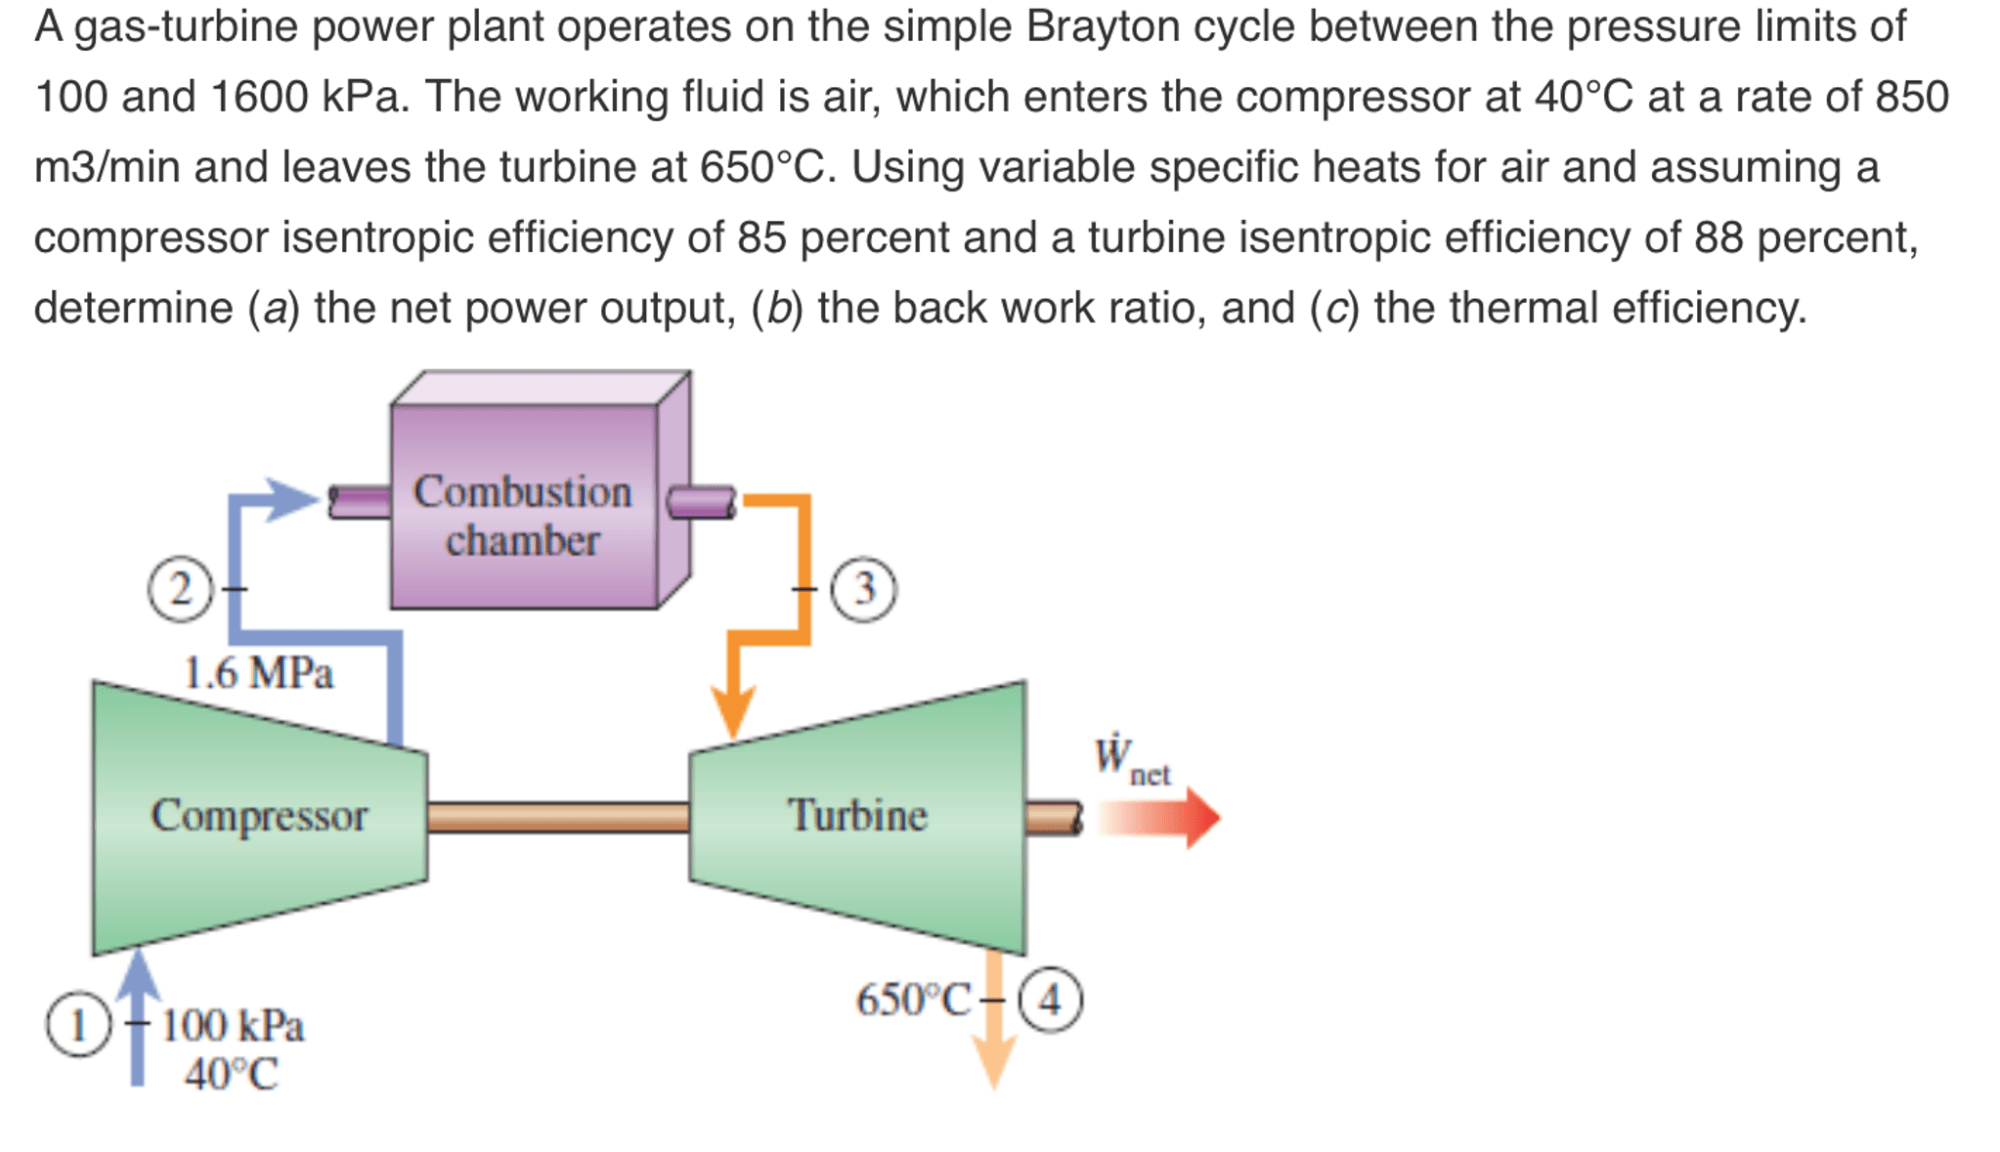 hight resolution of a gas turbine power plant operates on the simple b